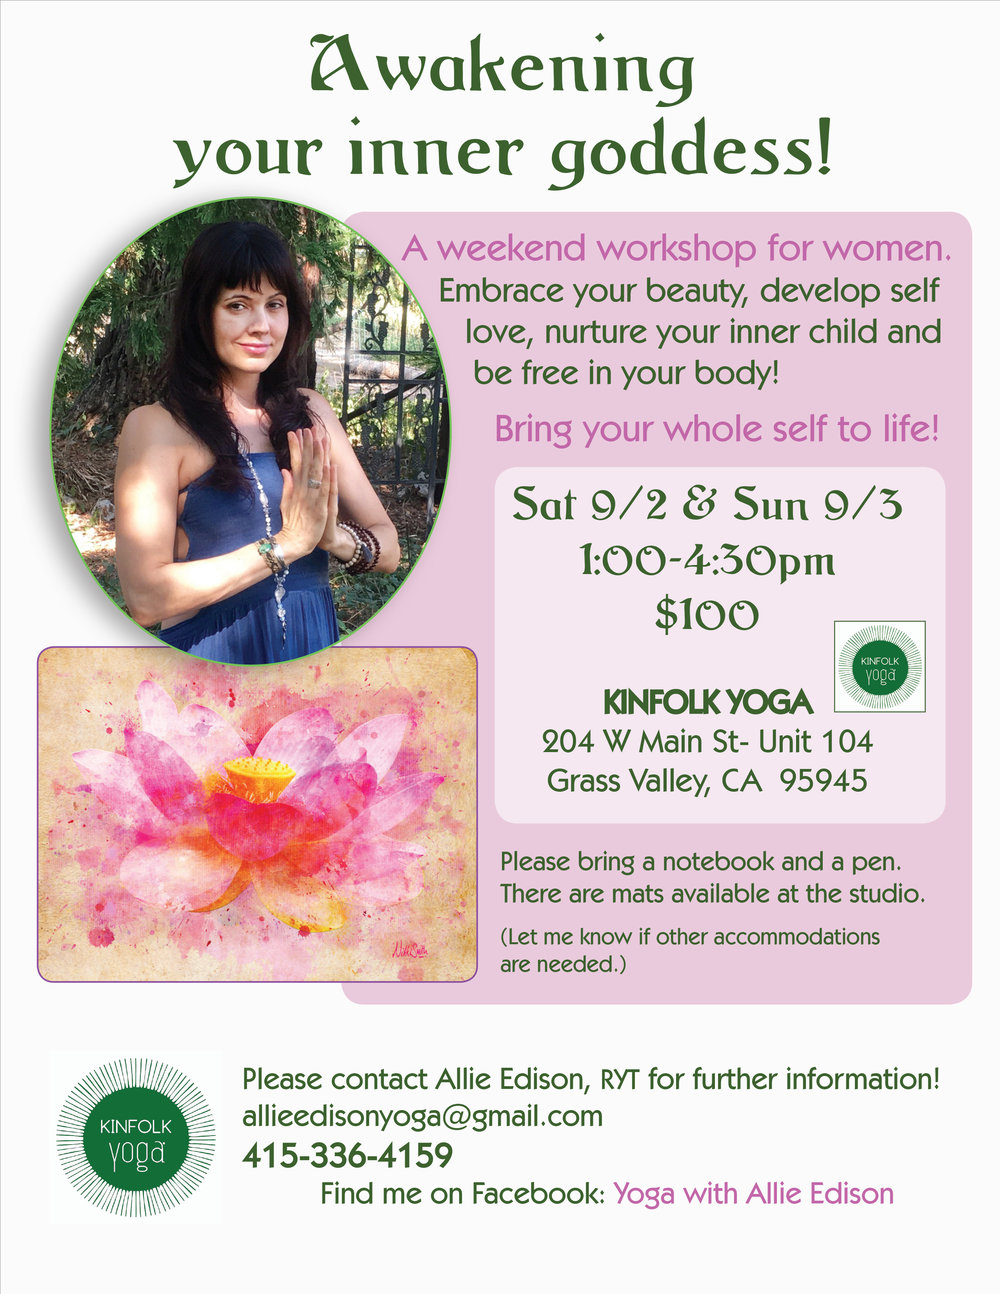 Awakening Your Inner Goddess Workshop Yoga Studio Nevada City Kinfolk Yoga